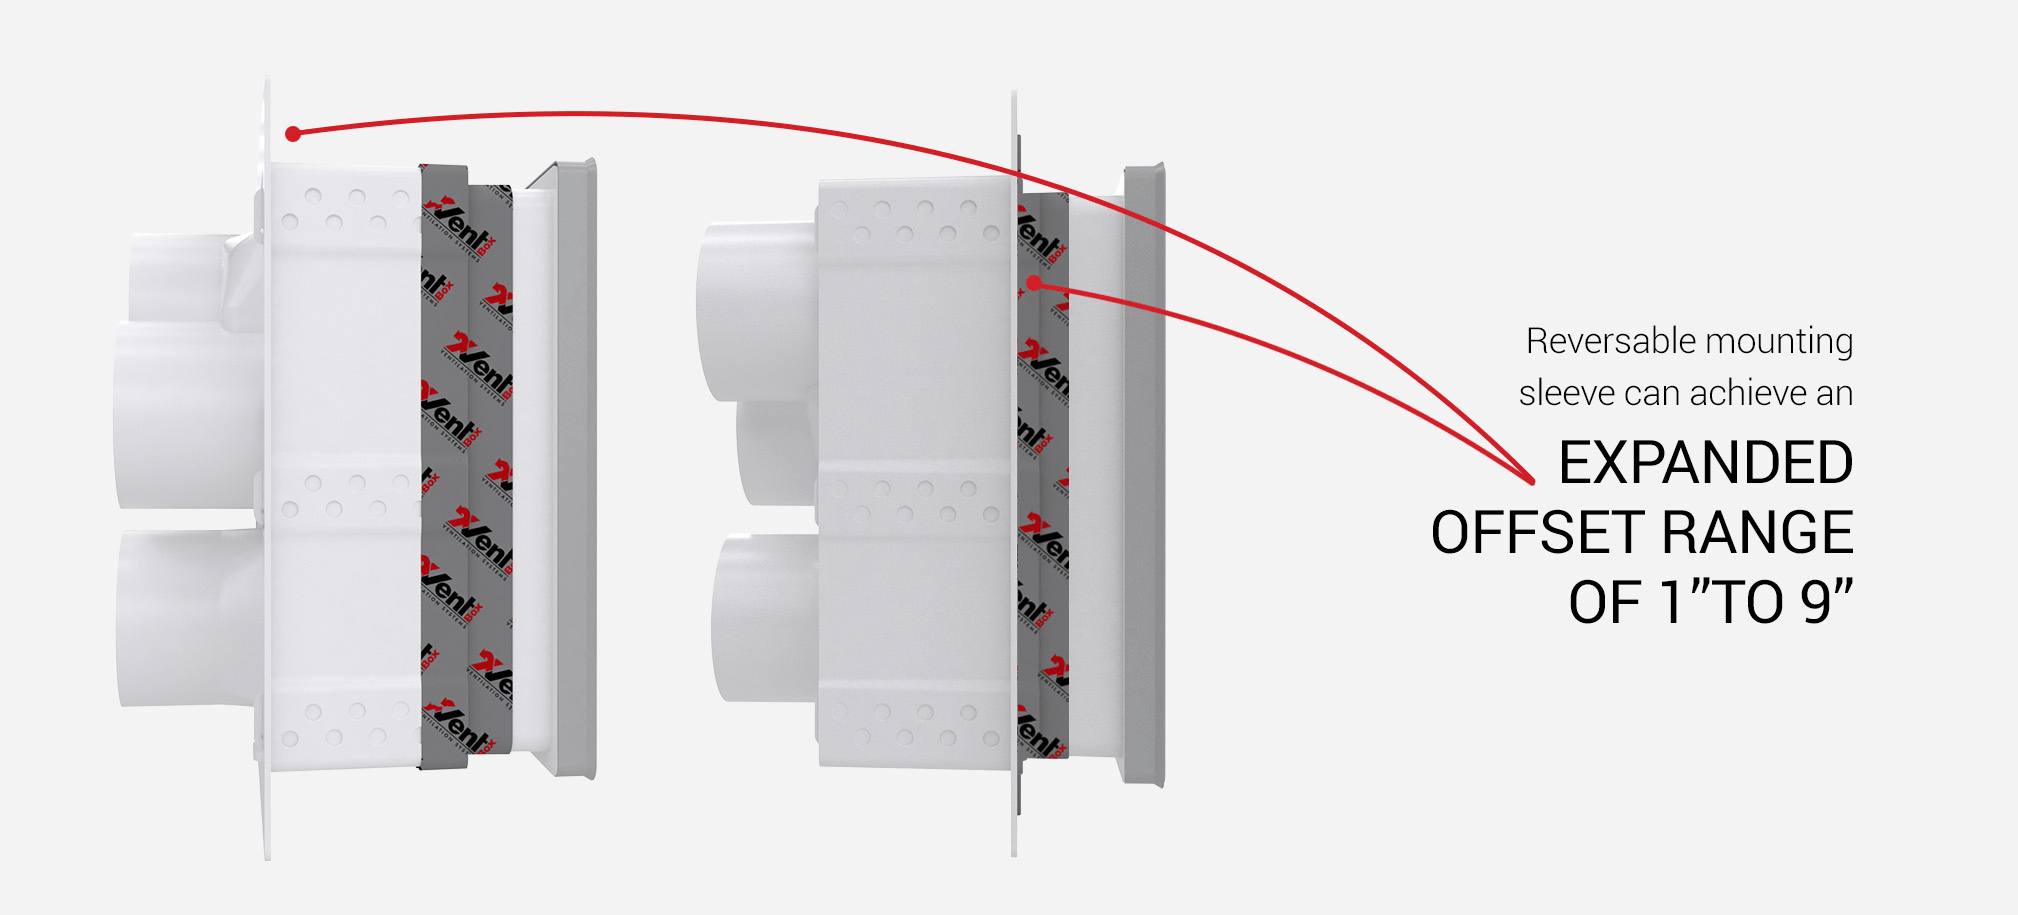 Expanded Offset Range of 1 Inch to 9 Inch